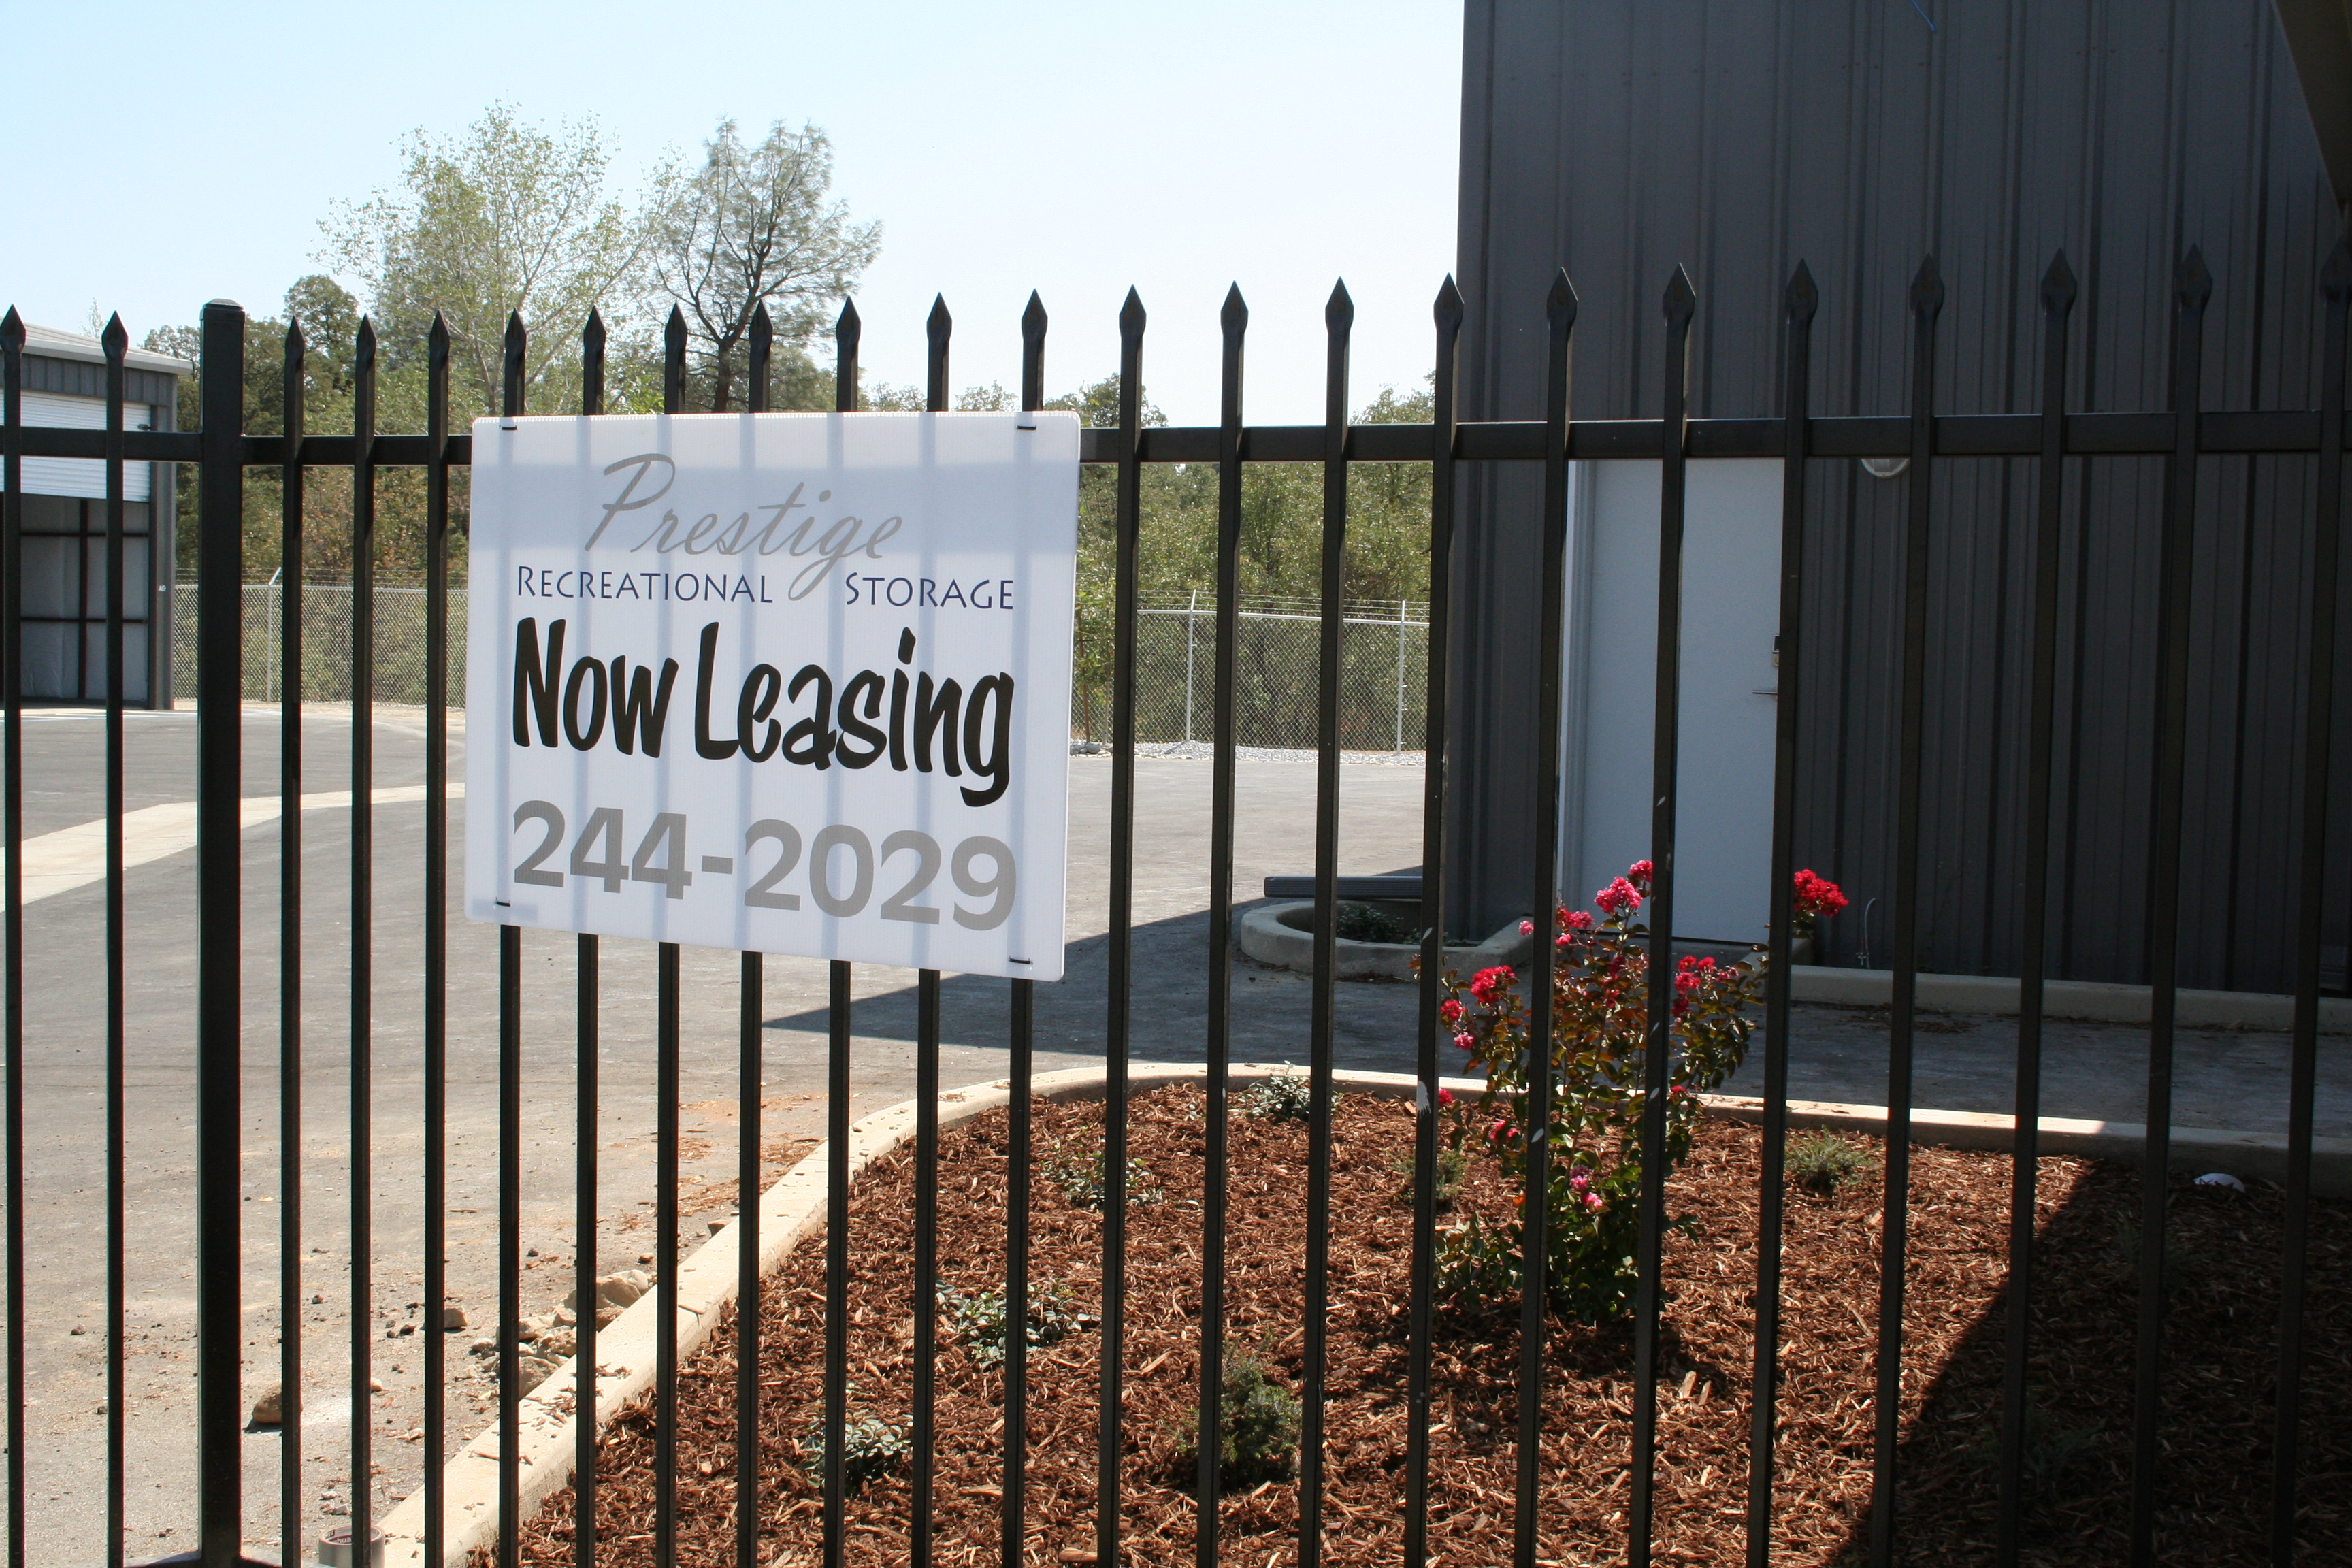 Photo of the now leasing sign